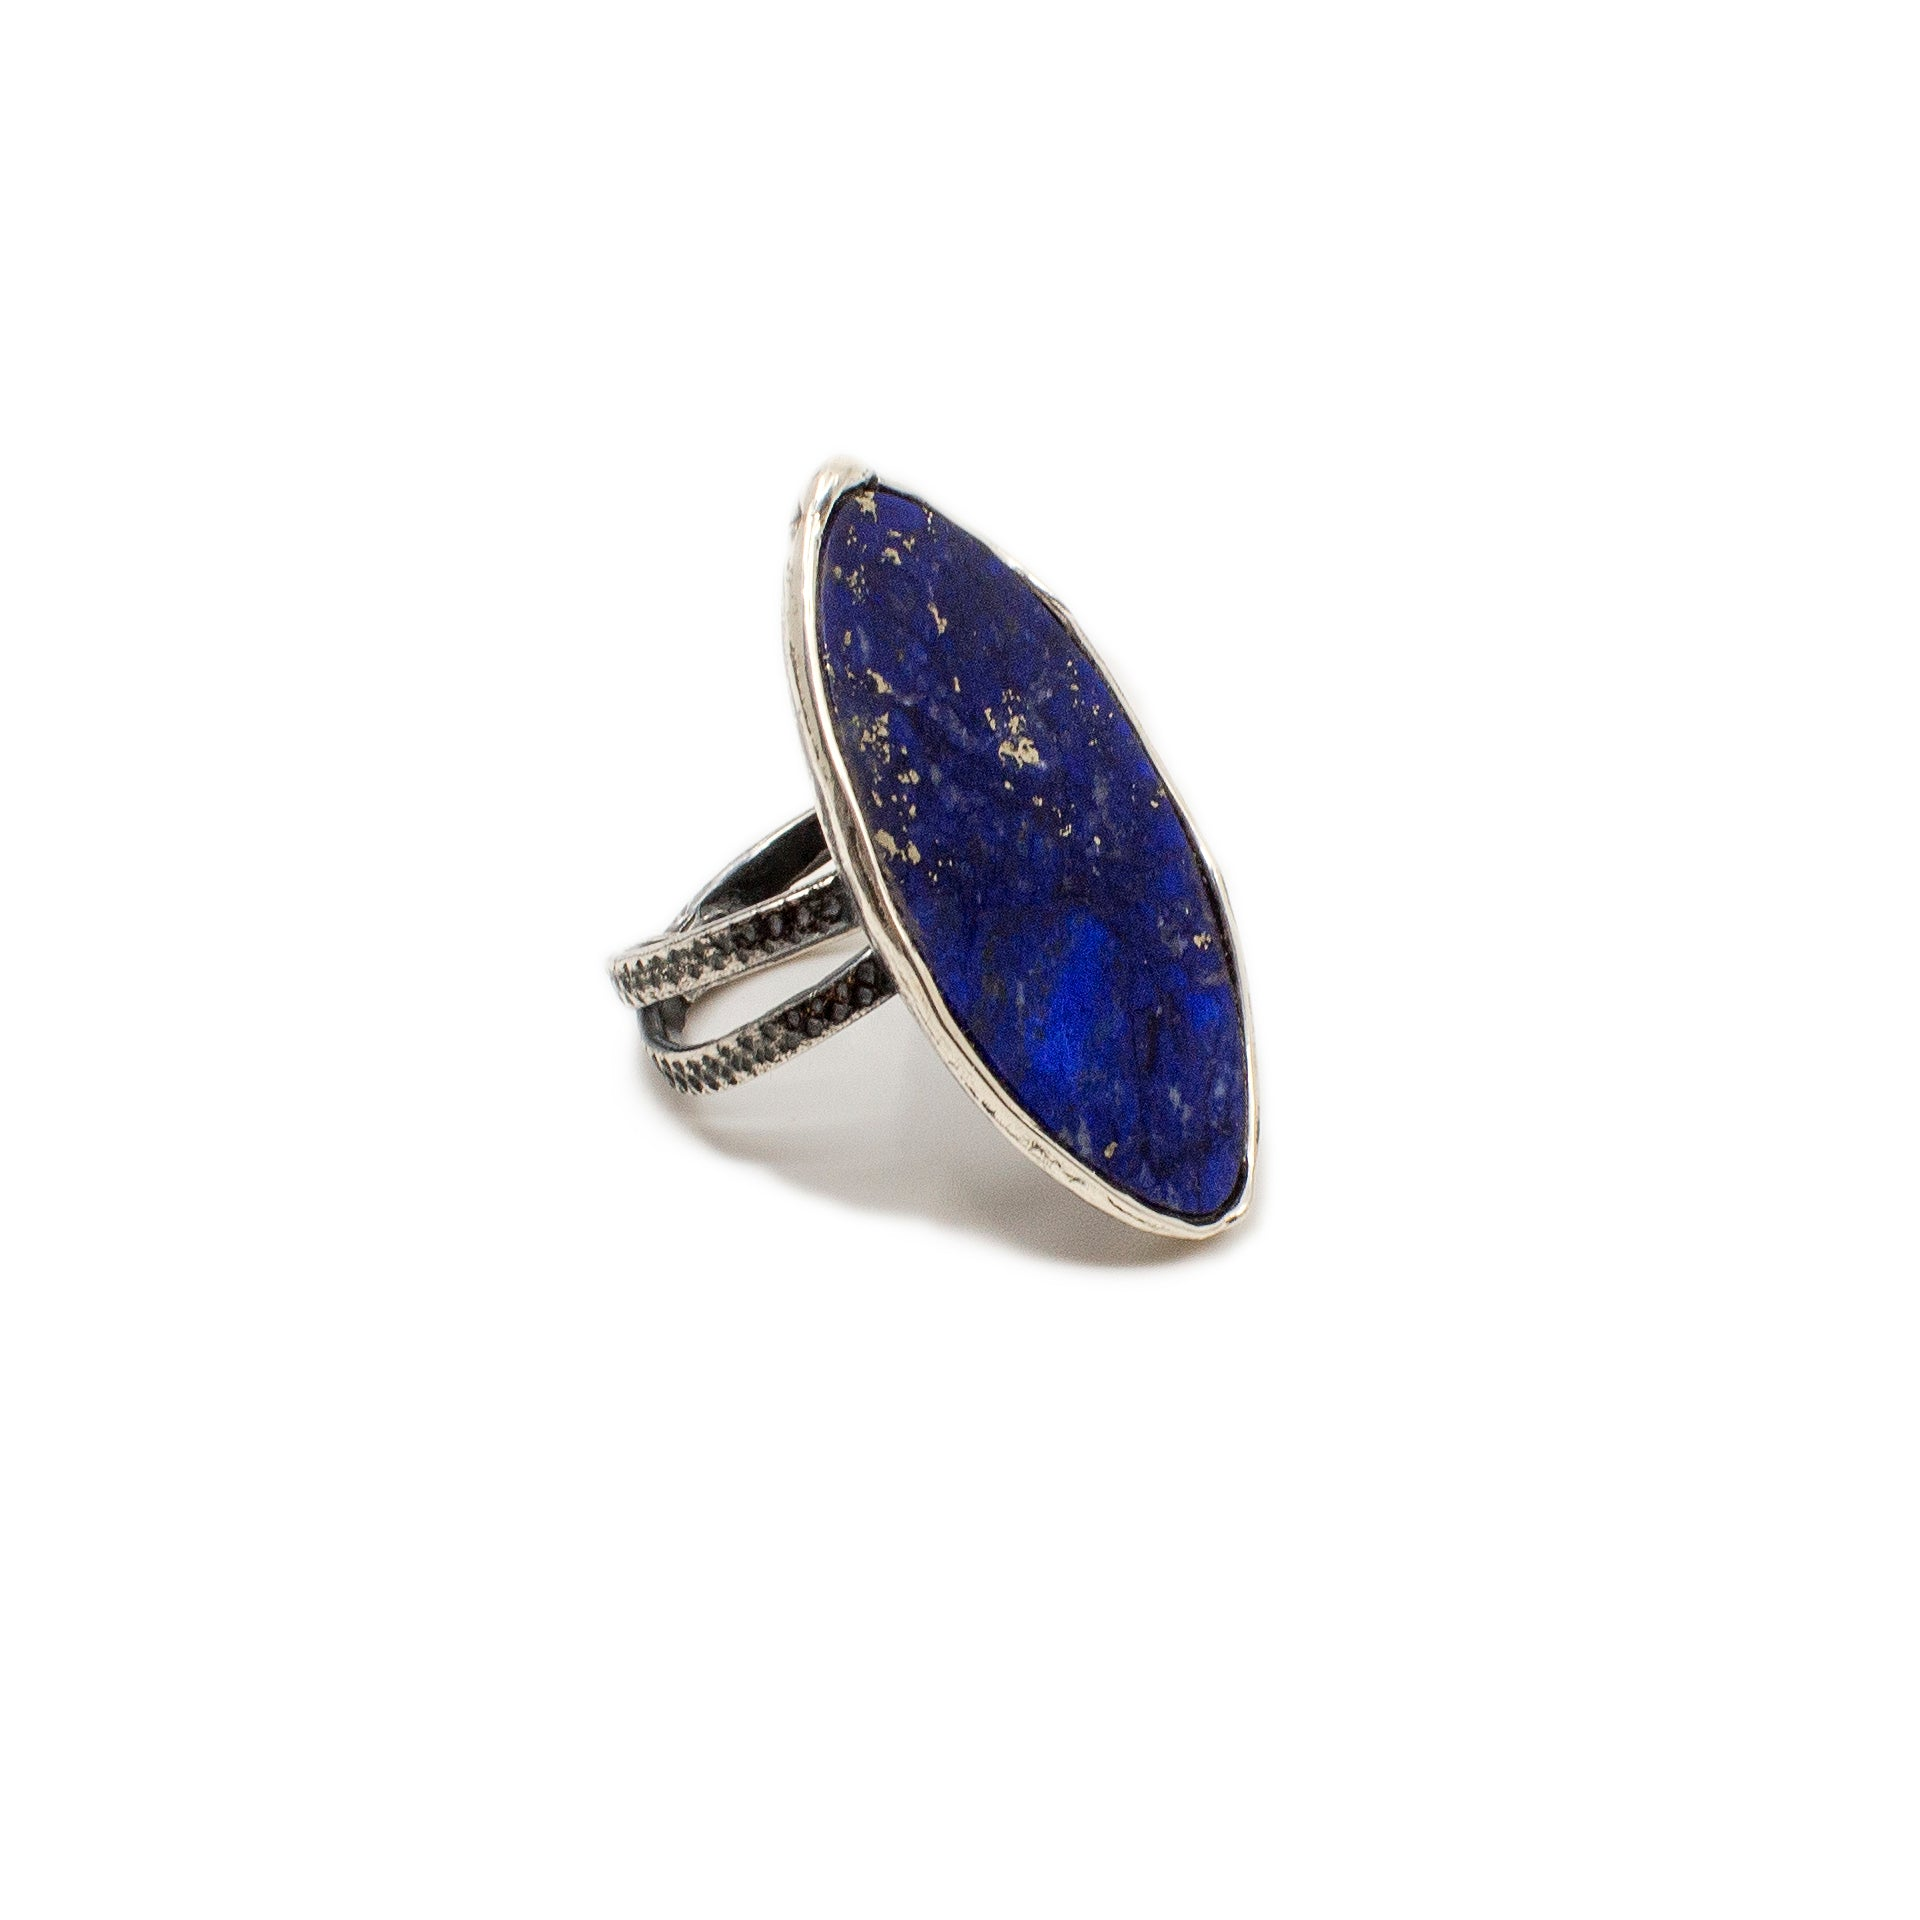 Ring with Lapis Sterling Silver Oxidized